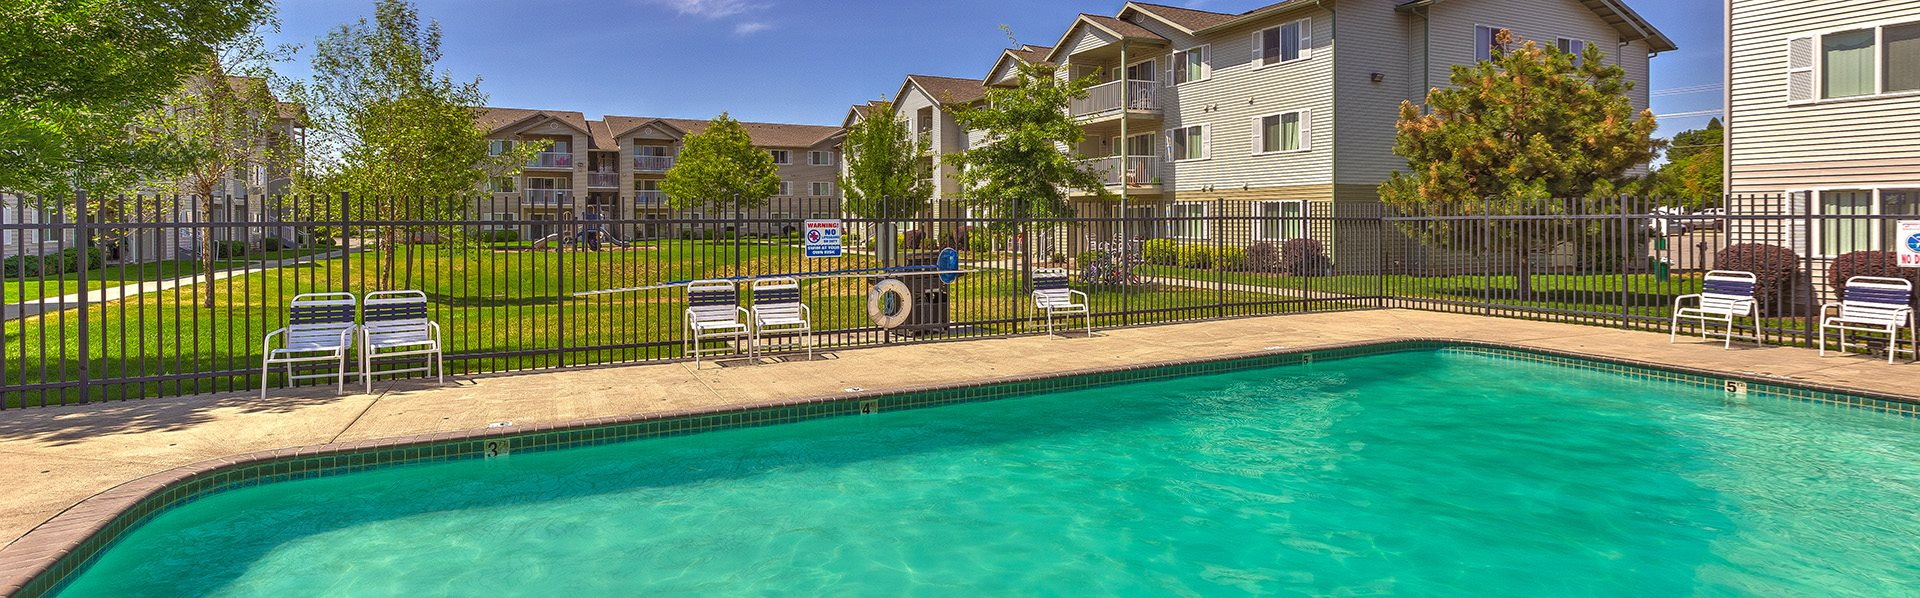 Swimming pool at Falls Creek Apartments